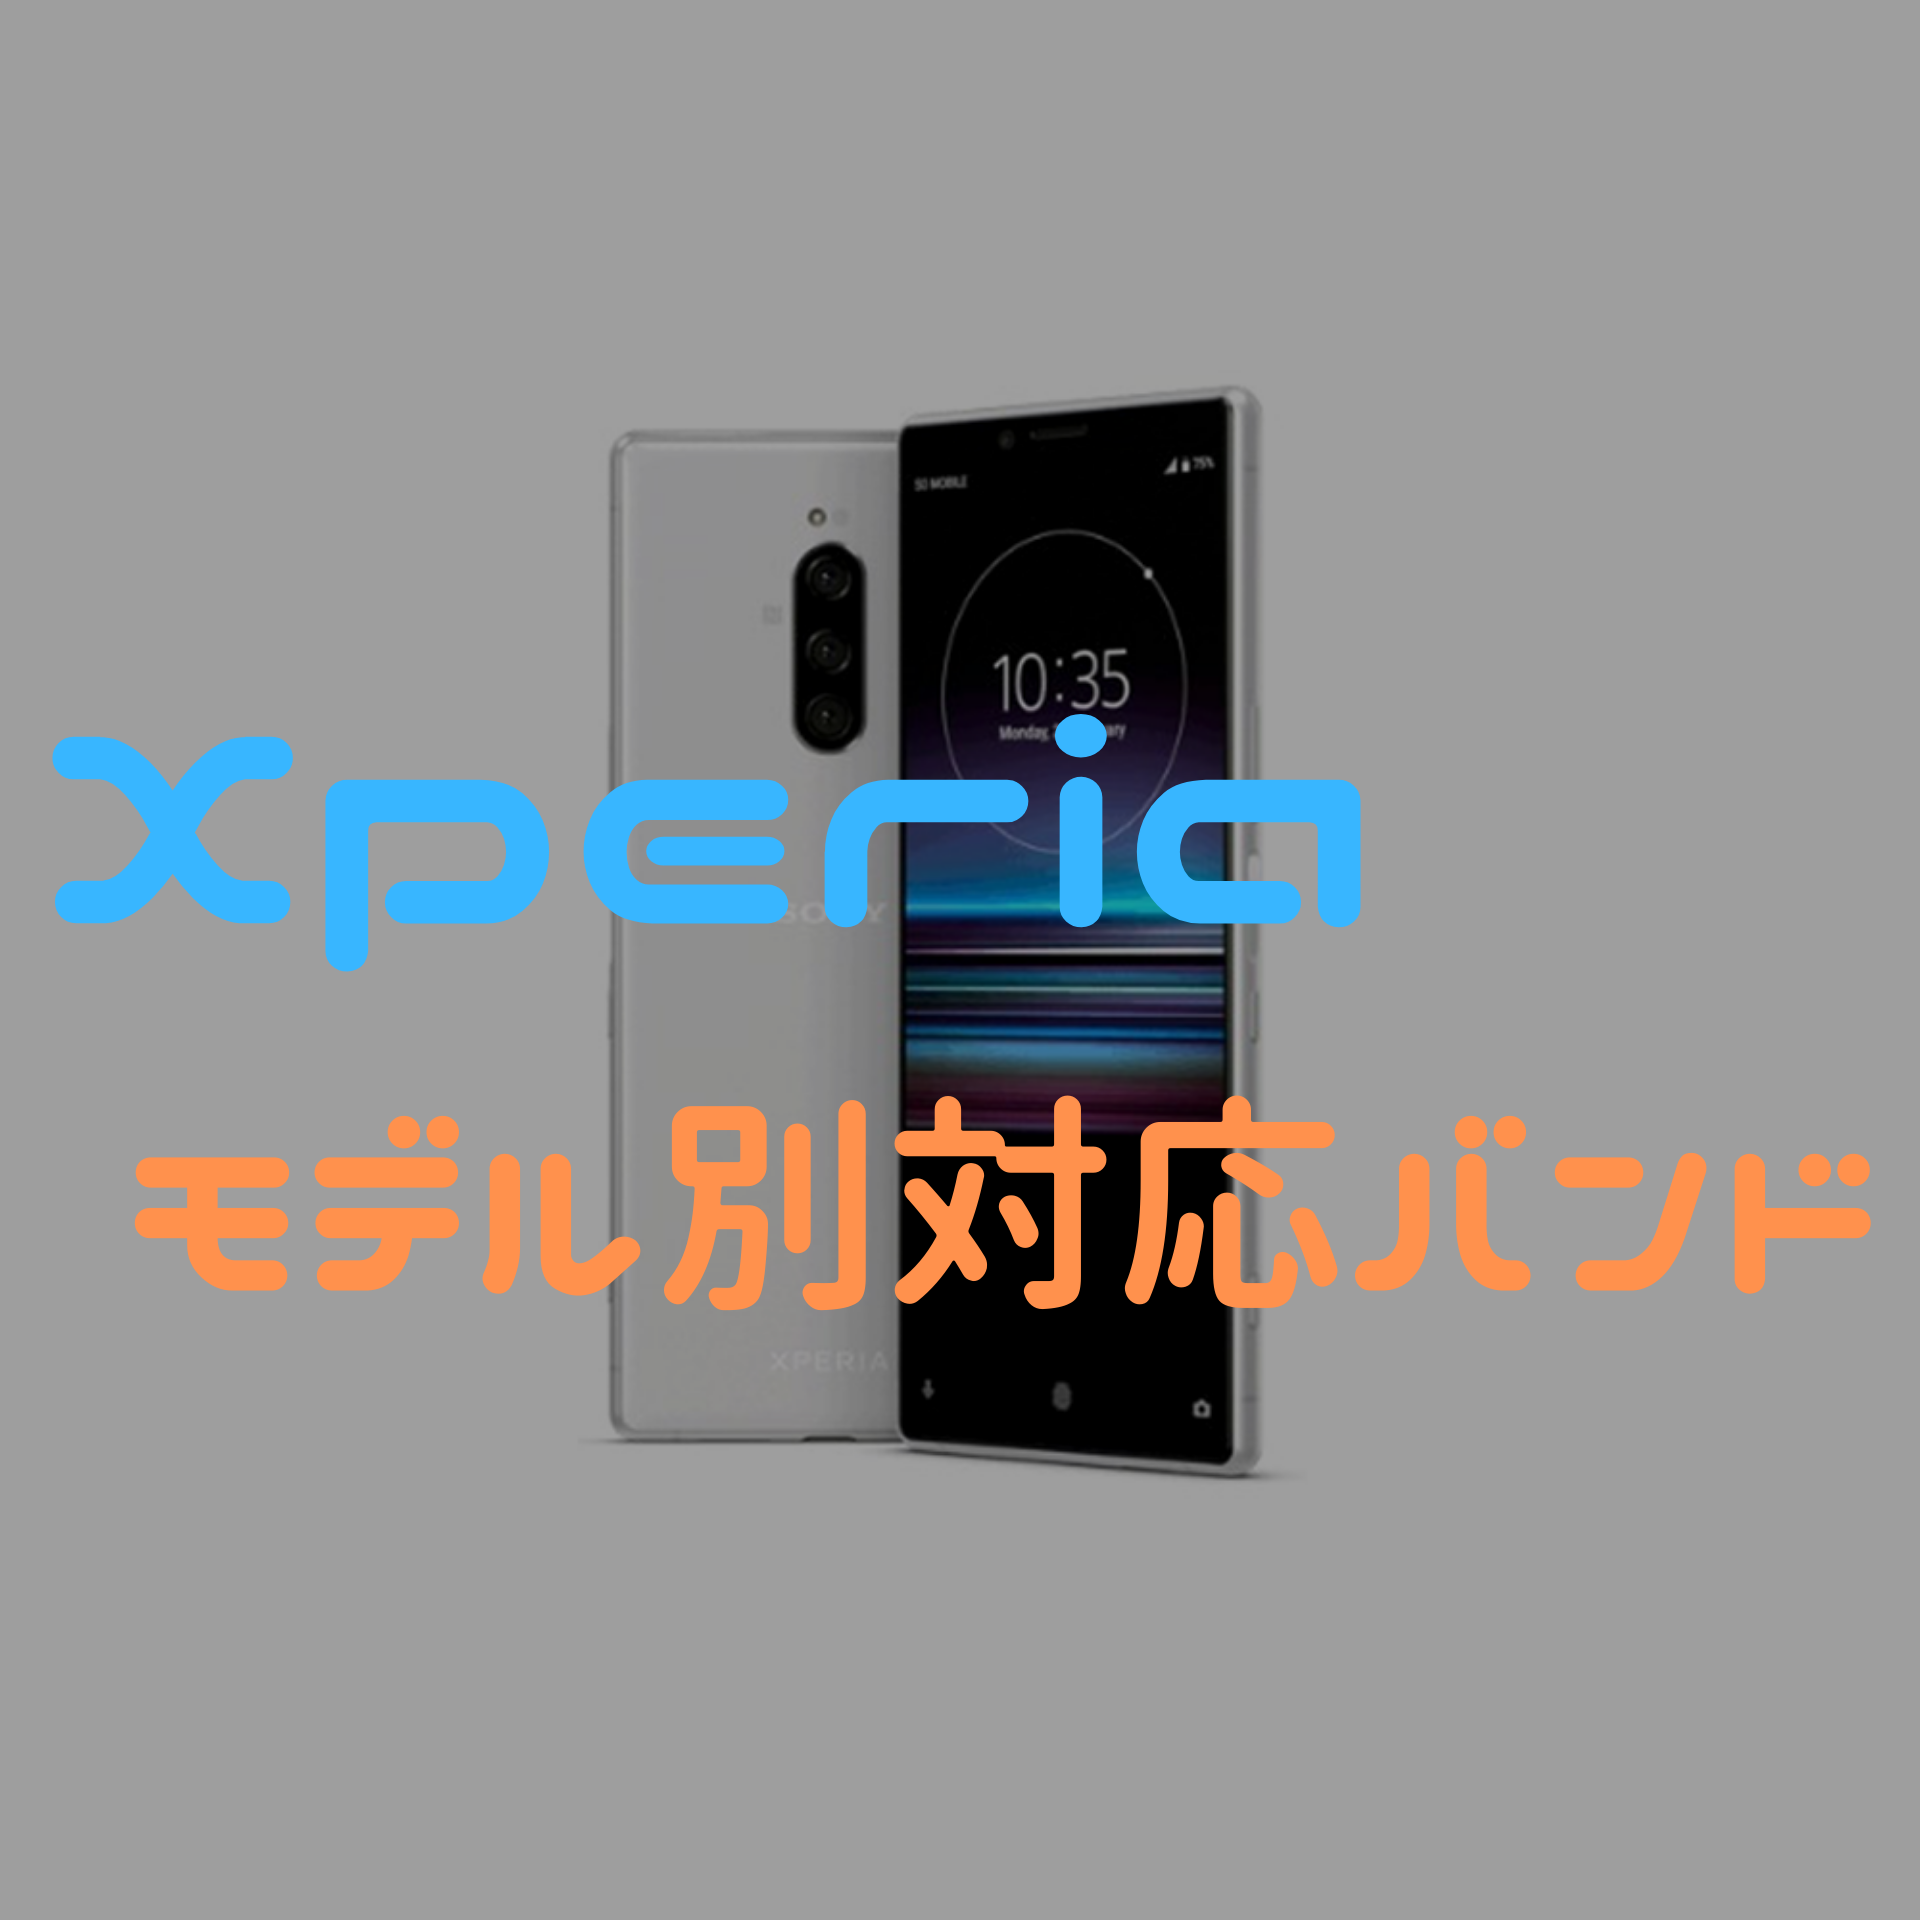 【Xperia 1, 5】国内外モデル別対応バンド表